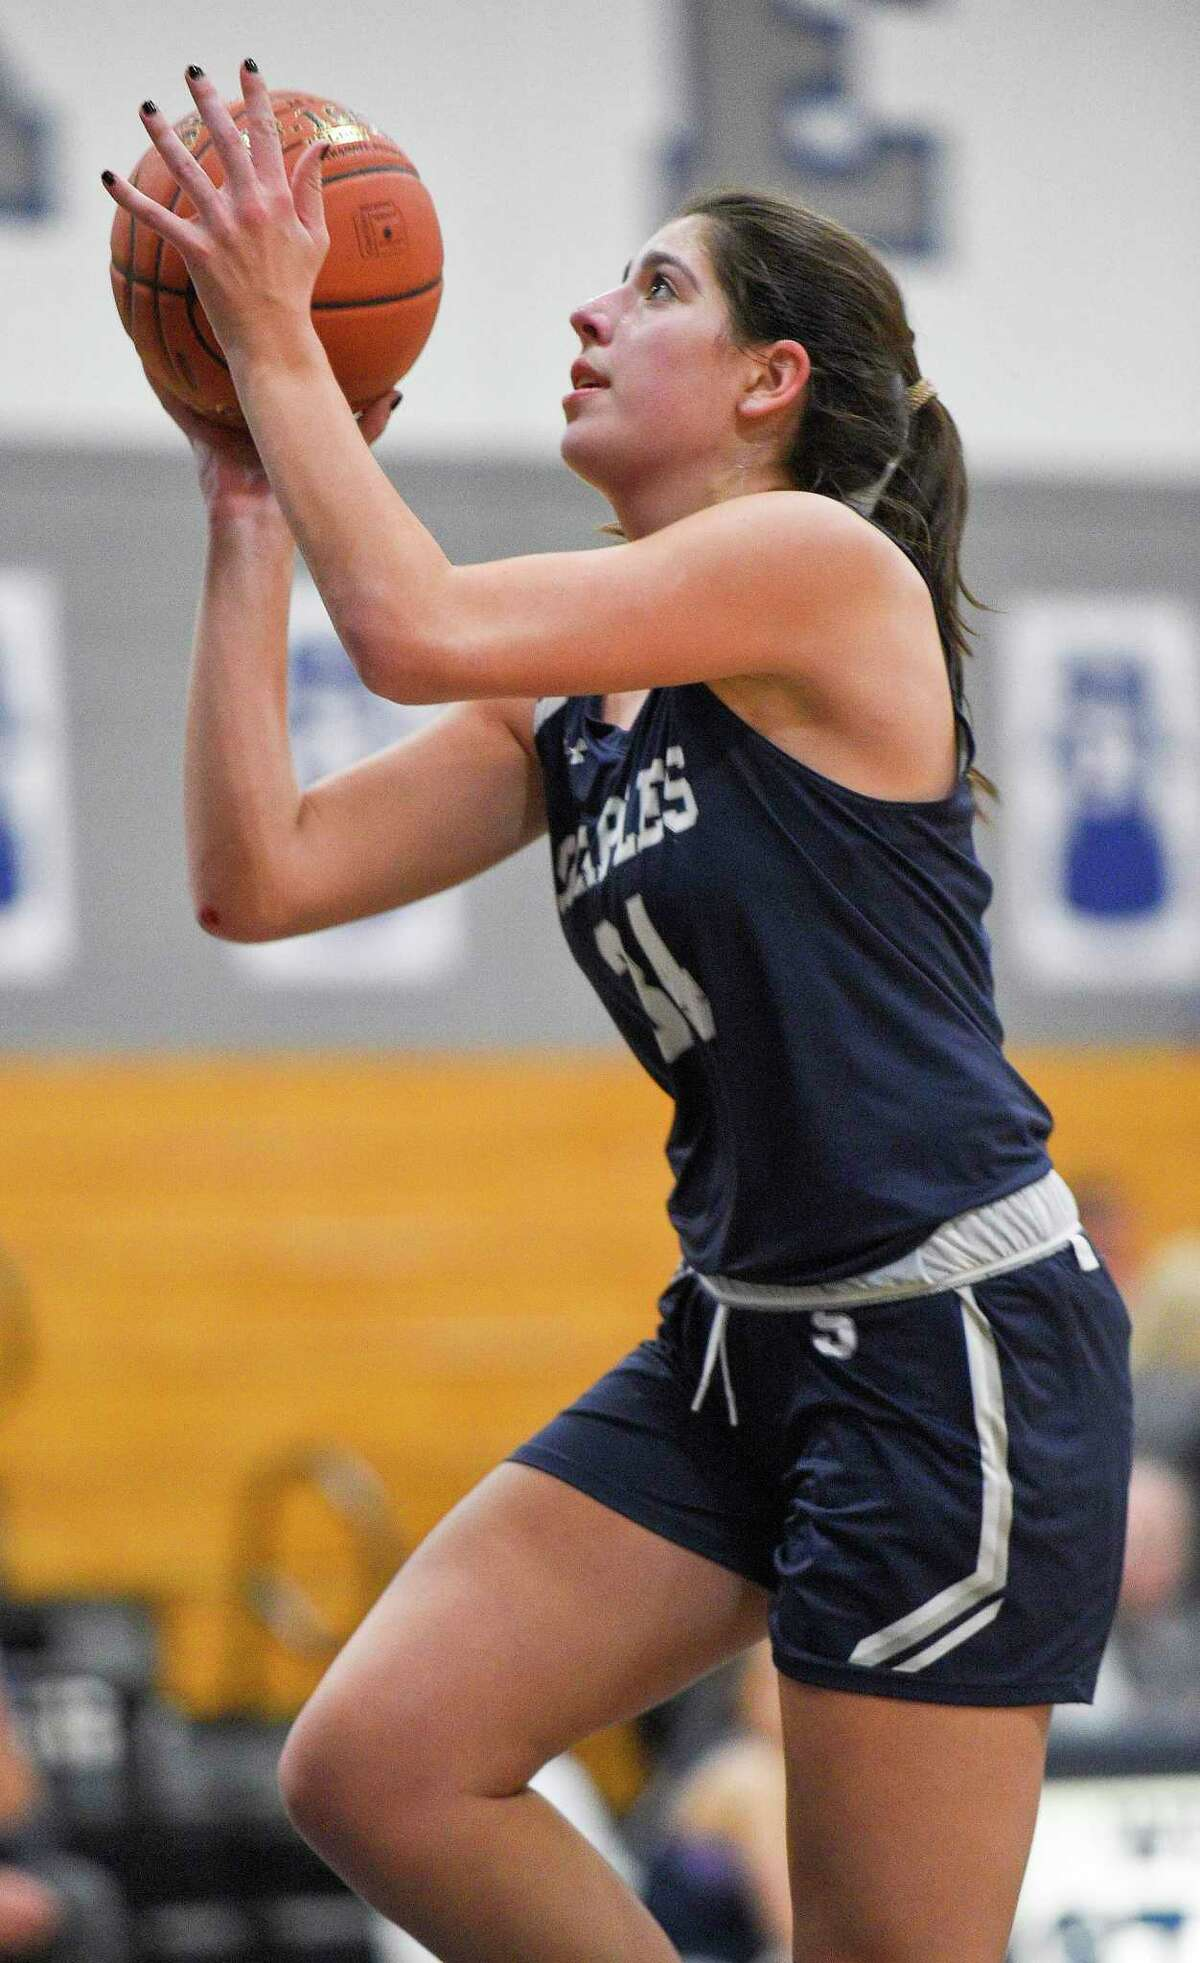 Staples Arianna Gerig puts up a shot against Greenwich in the second half of an FCIAC girls basketball game at Staples High School on Jan. 24, 2020 in Westport, Connecticut. Staples defeated Greenwich 60-44.